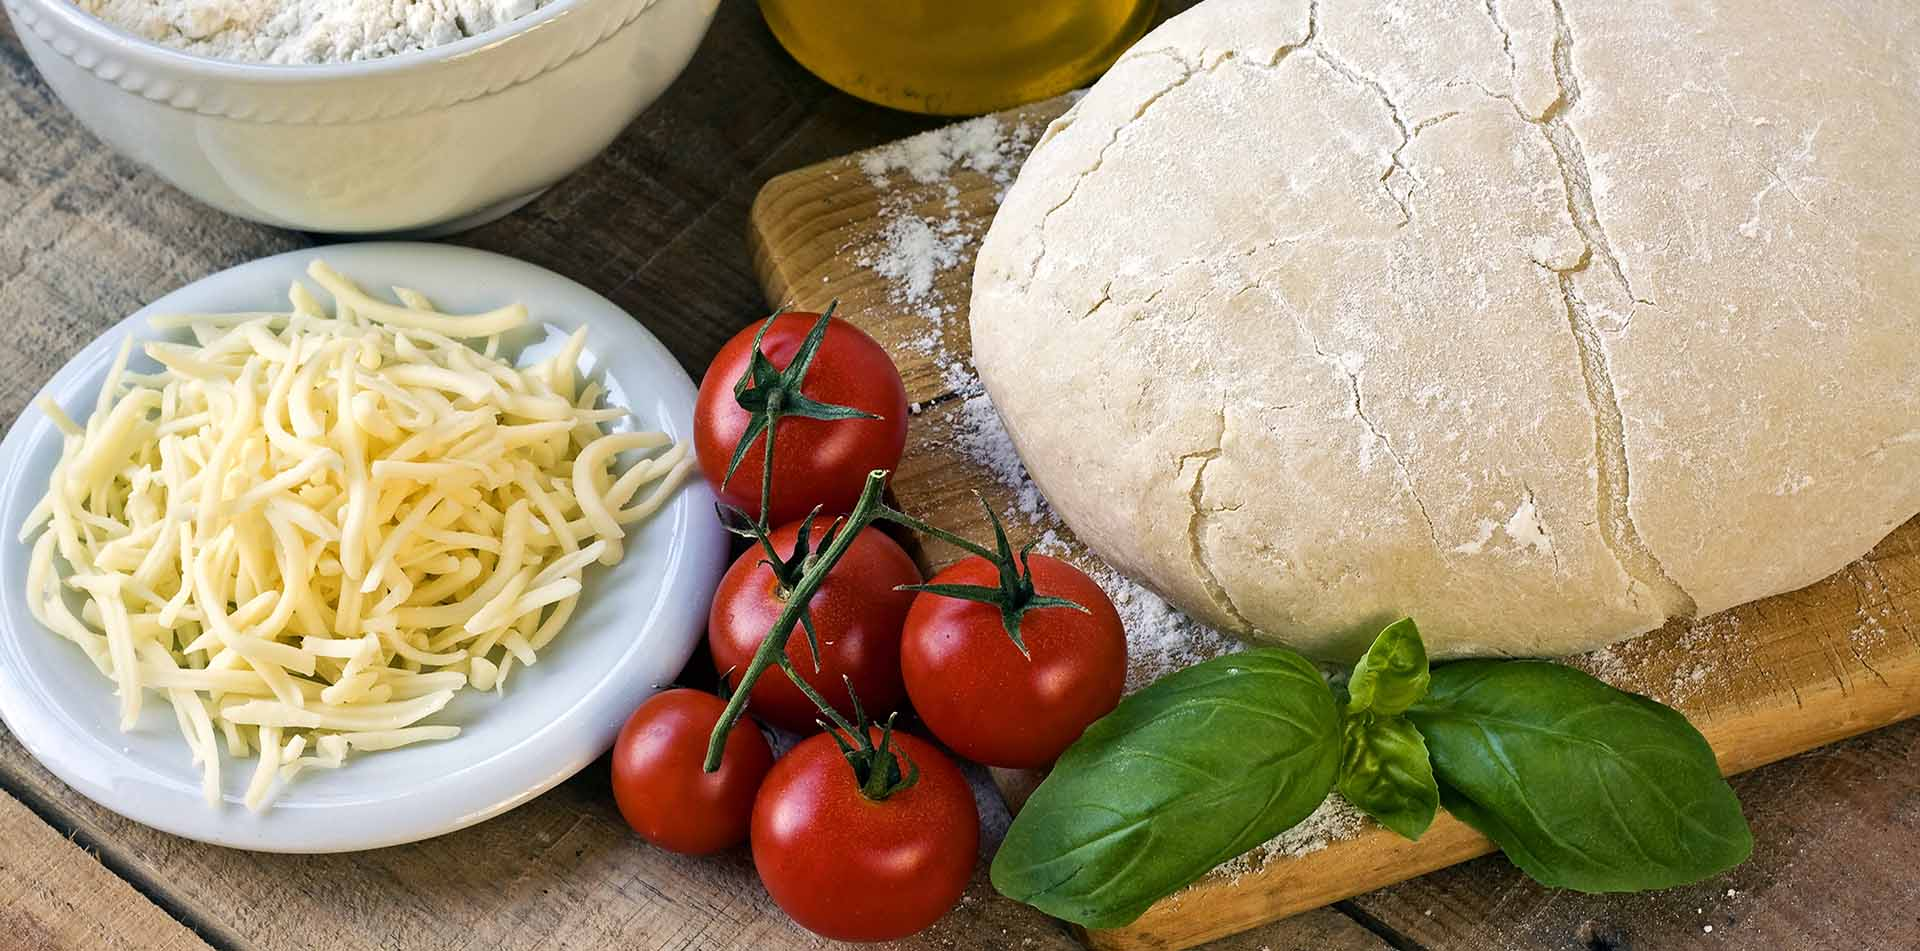 Europe Italy Tuscany pizza ingredients dough tomatoes cheese olive oil food wine - luxury vacation destinations